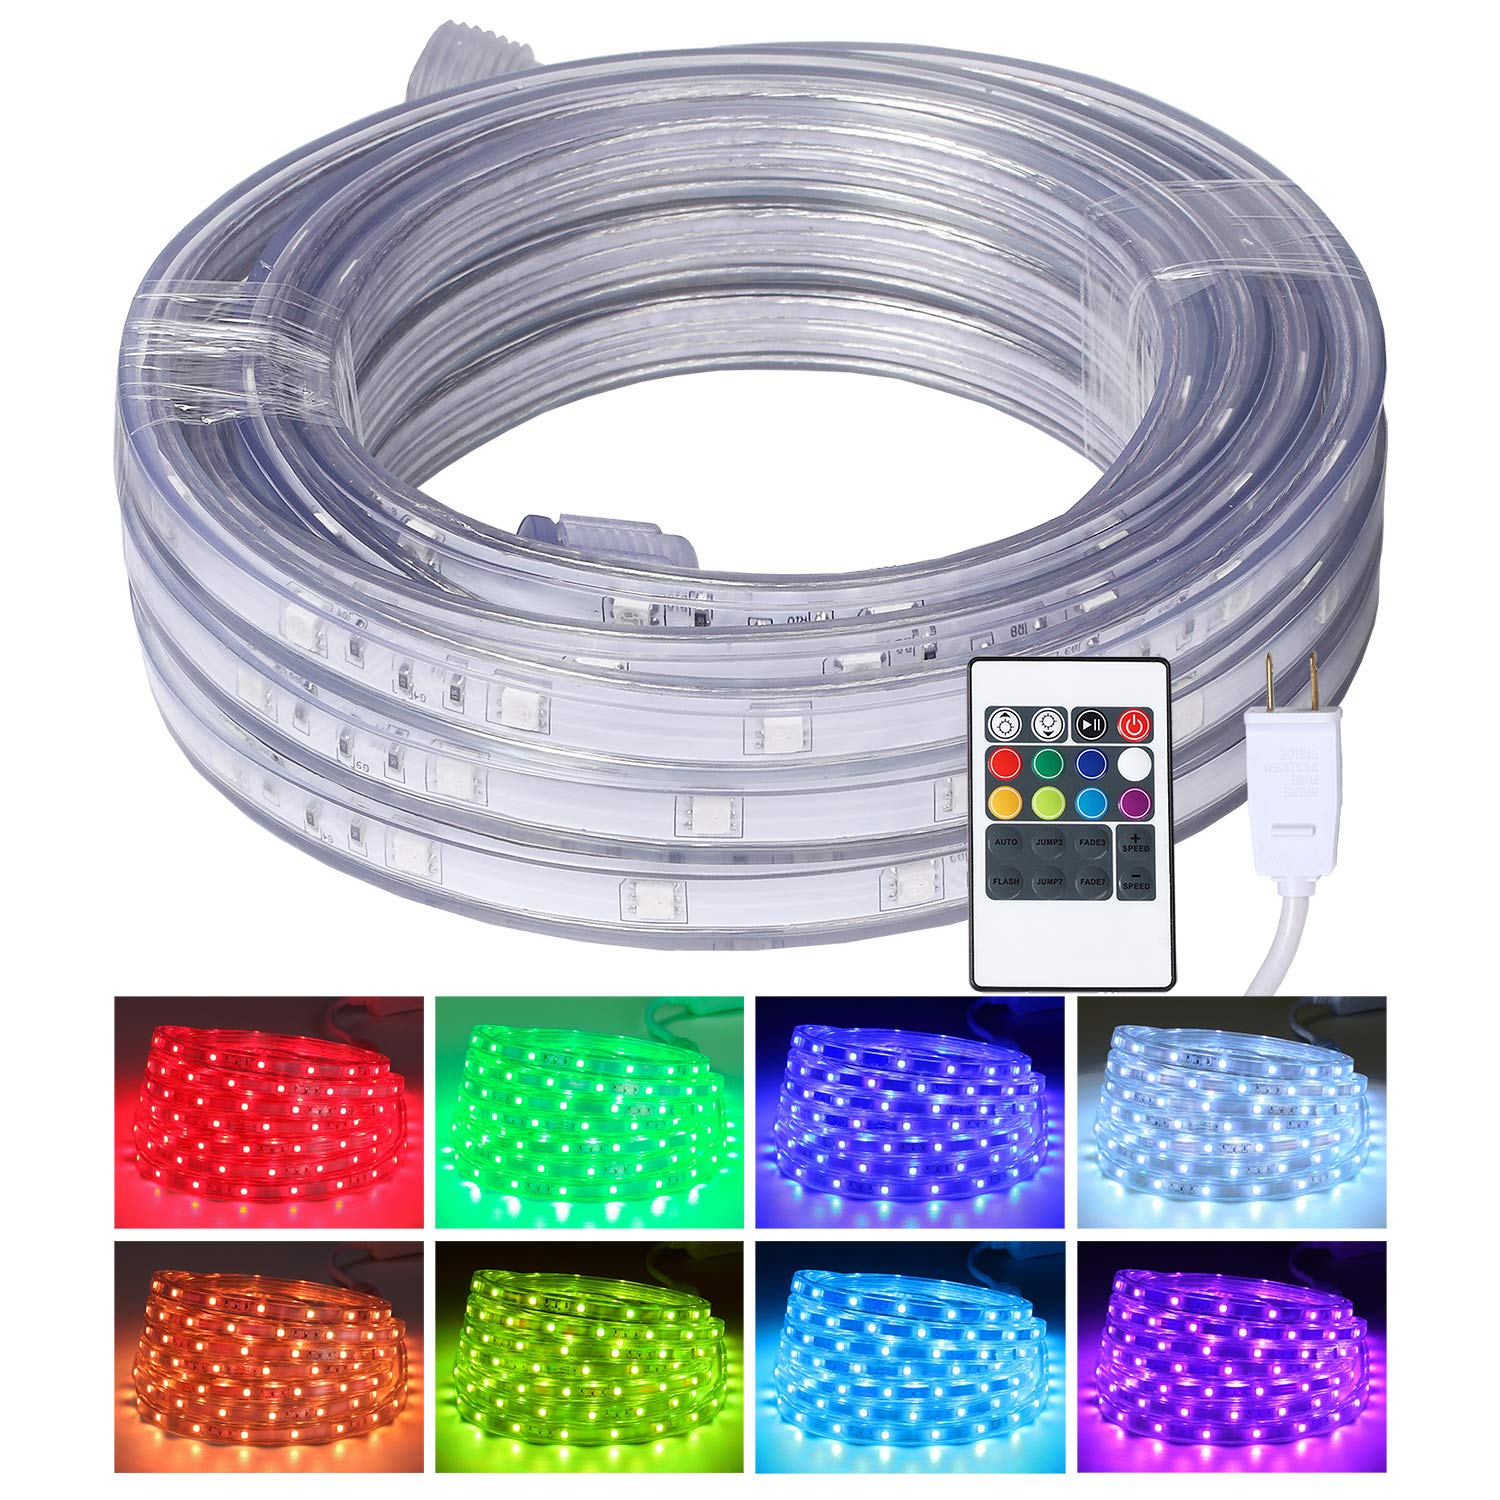 Areful LED Rope Lights, 16.4ft Flat Flexible RGB Strip Light, Color Changing, Waterproof for Indoor/Outdoor use, Connectable Decorative Lighting, 8 Colors and Multiple Modes